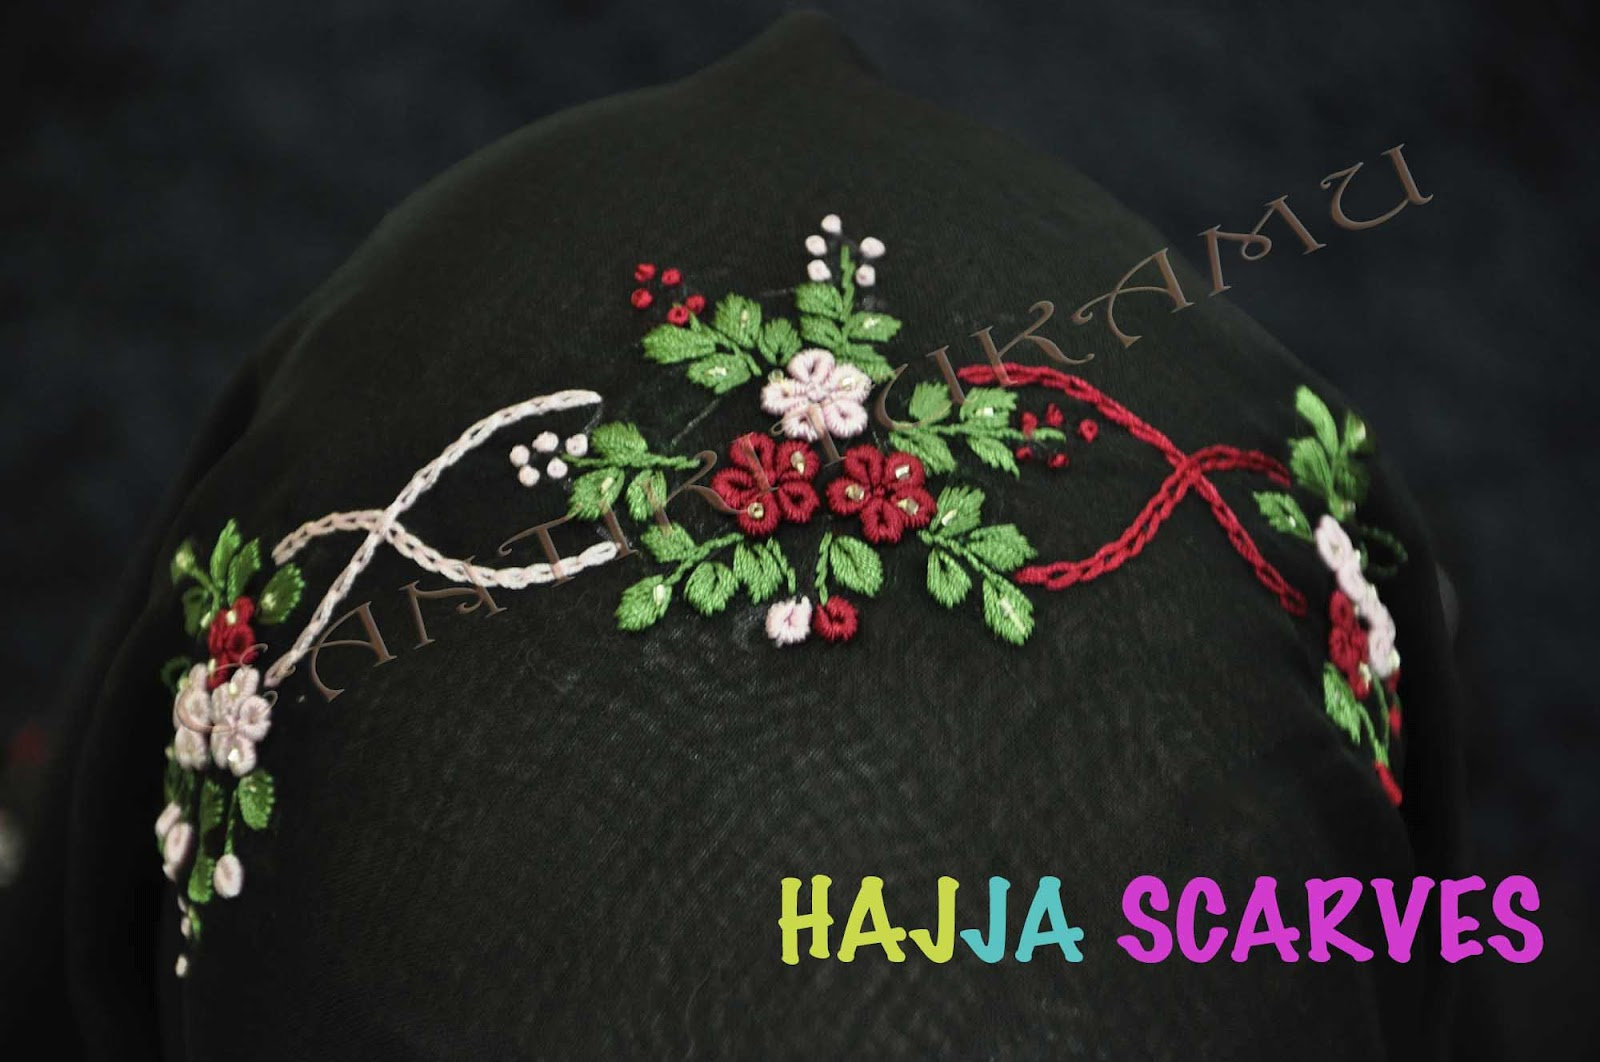 HAJJA SCAREVS-SOLD OUT-TQ!